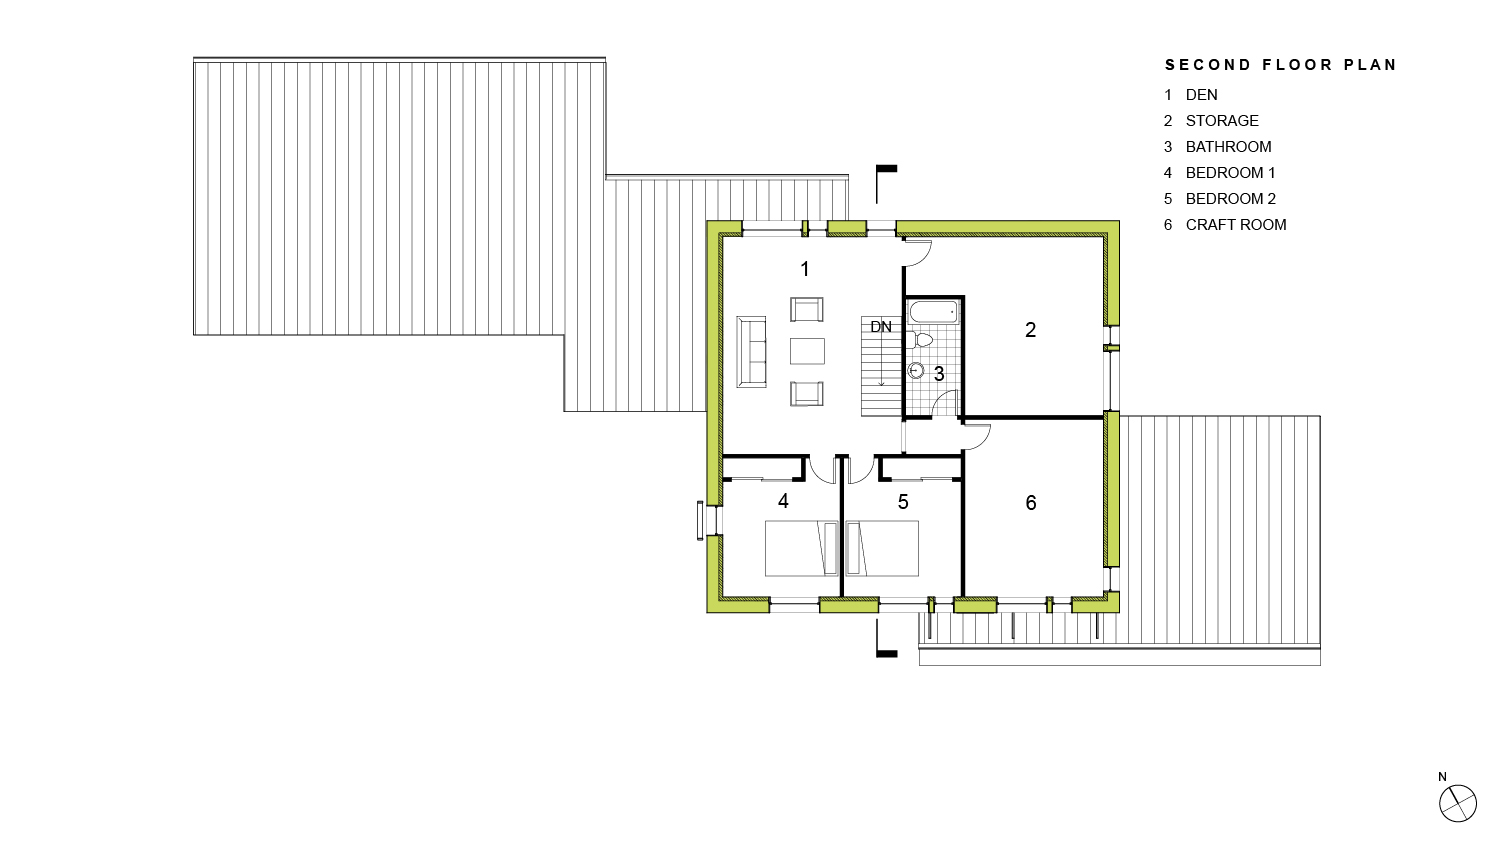 soeder-second-floor-plan